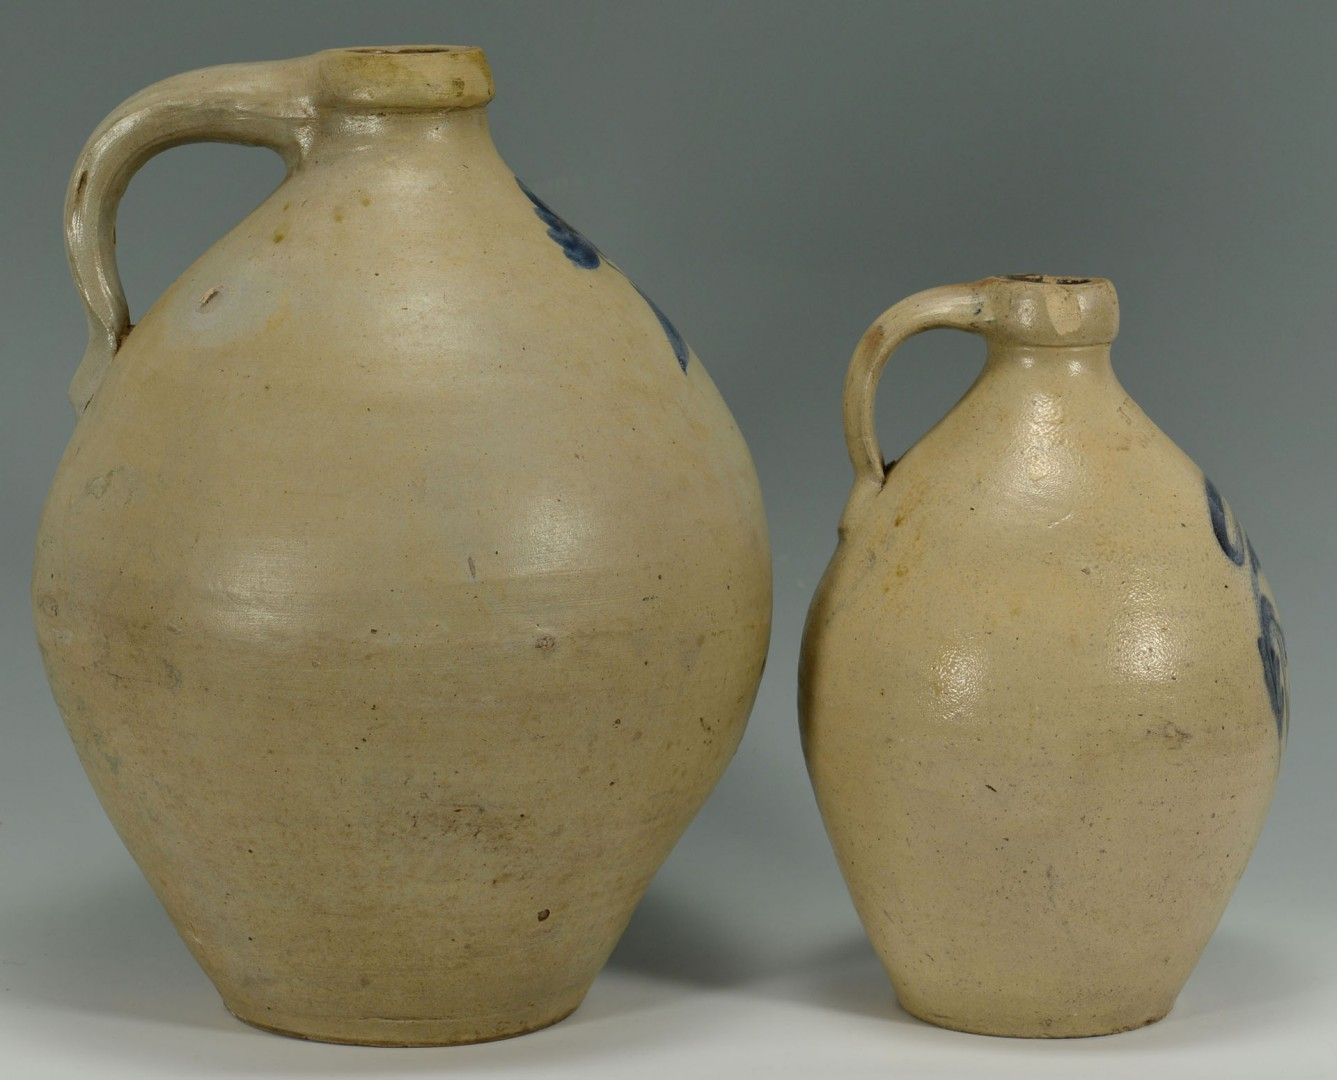 Lot 458: 2 Cobalt Decorated Ovoid Stoneware Jugs, NE